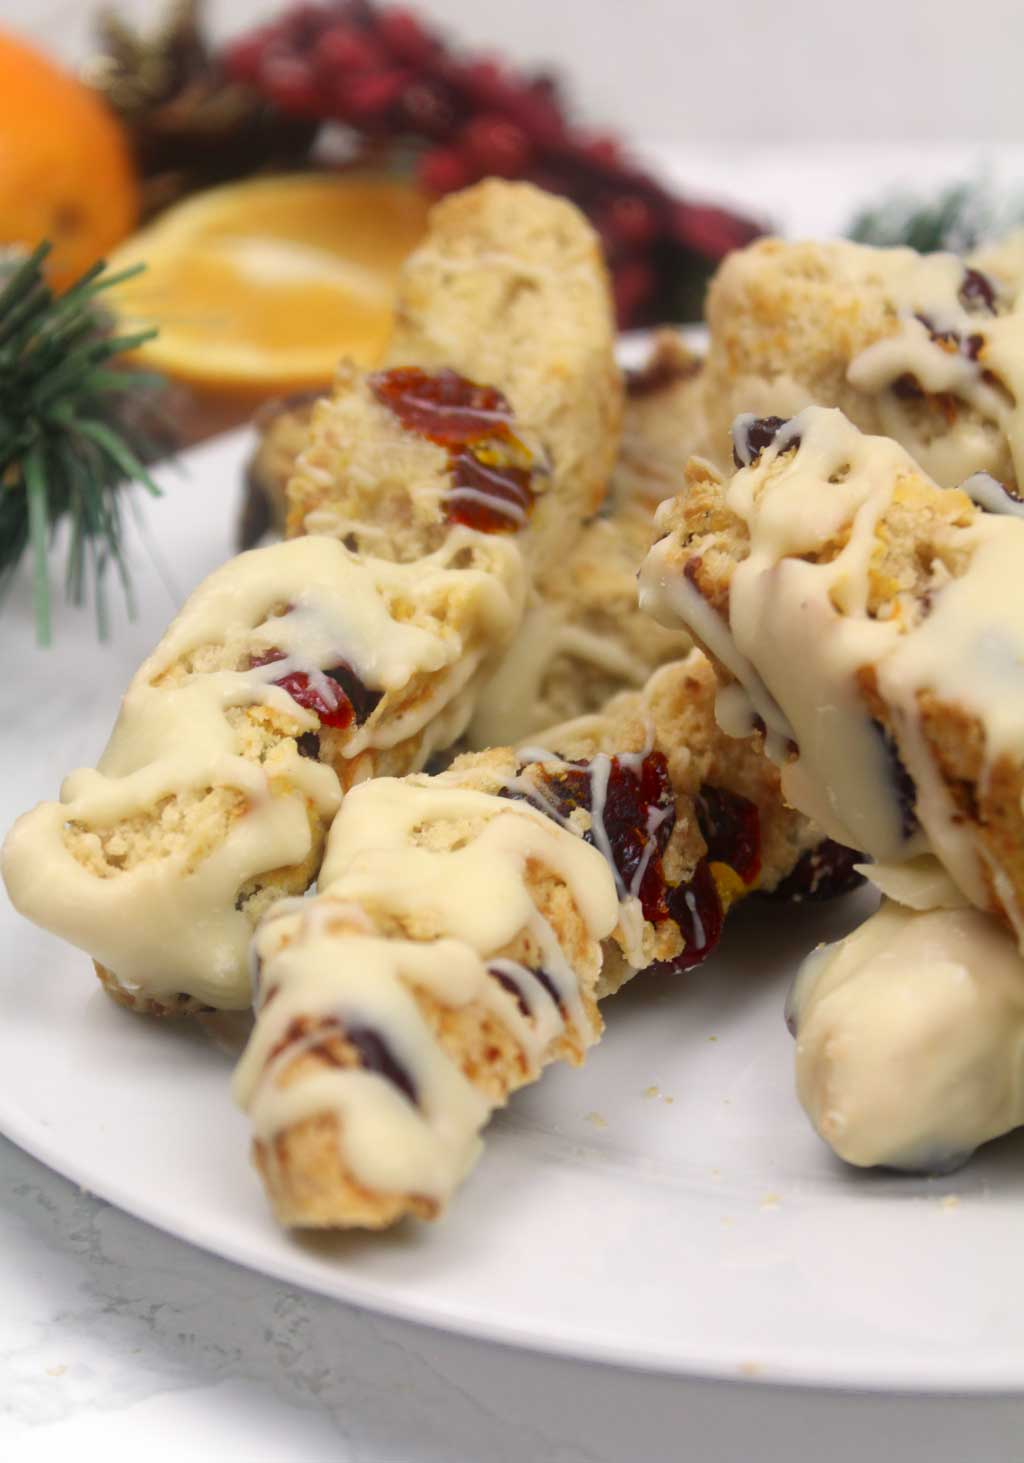 orange and cranberry biscotti on a plate with oranges in the background